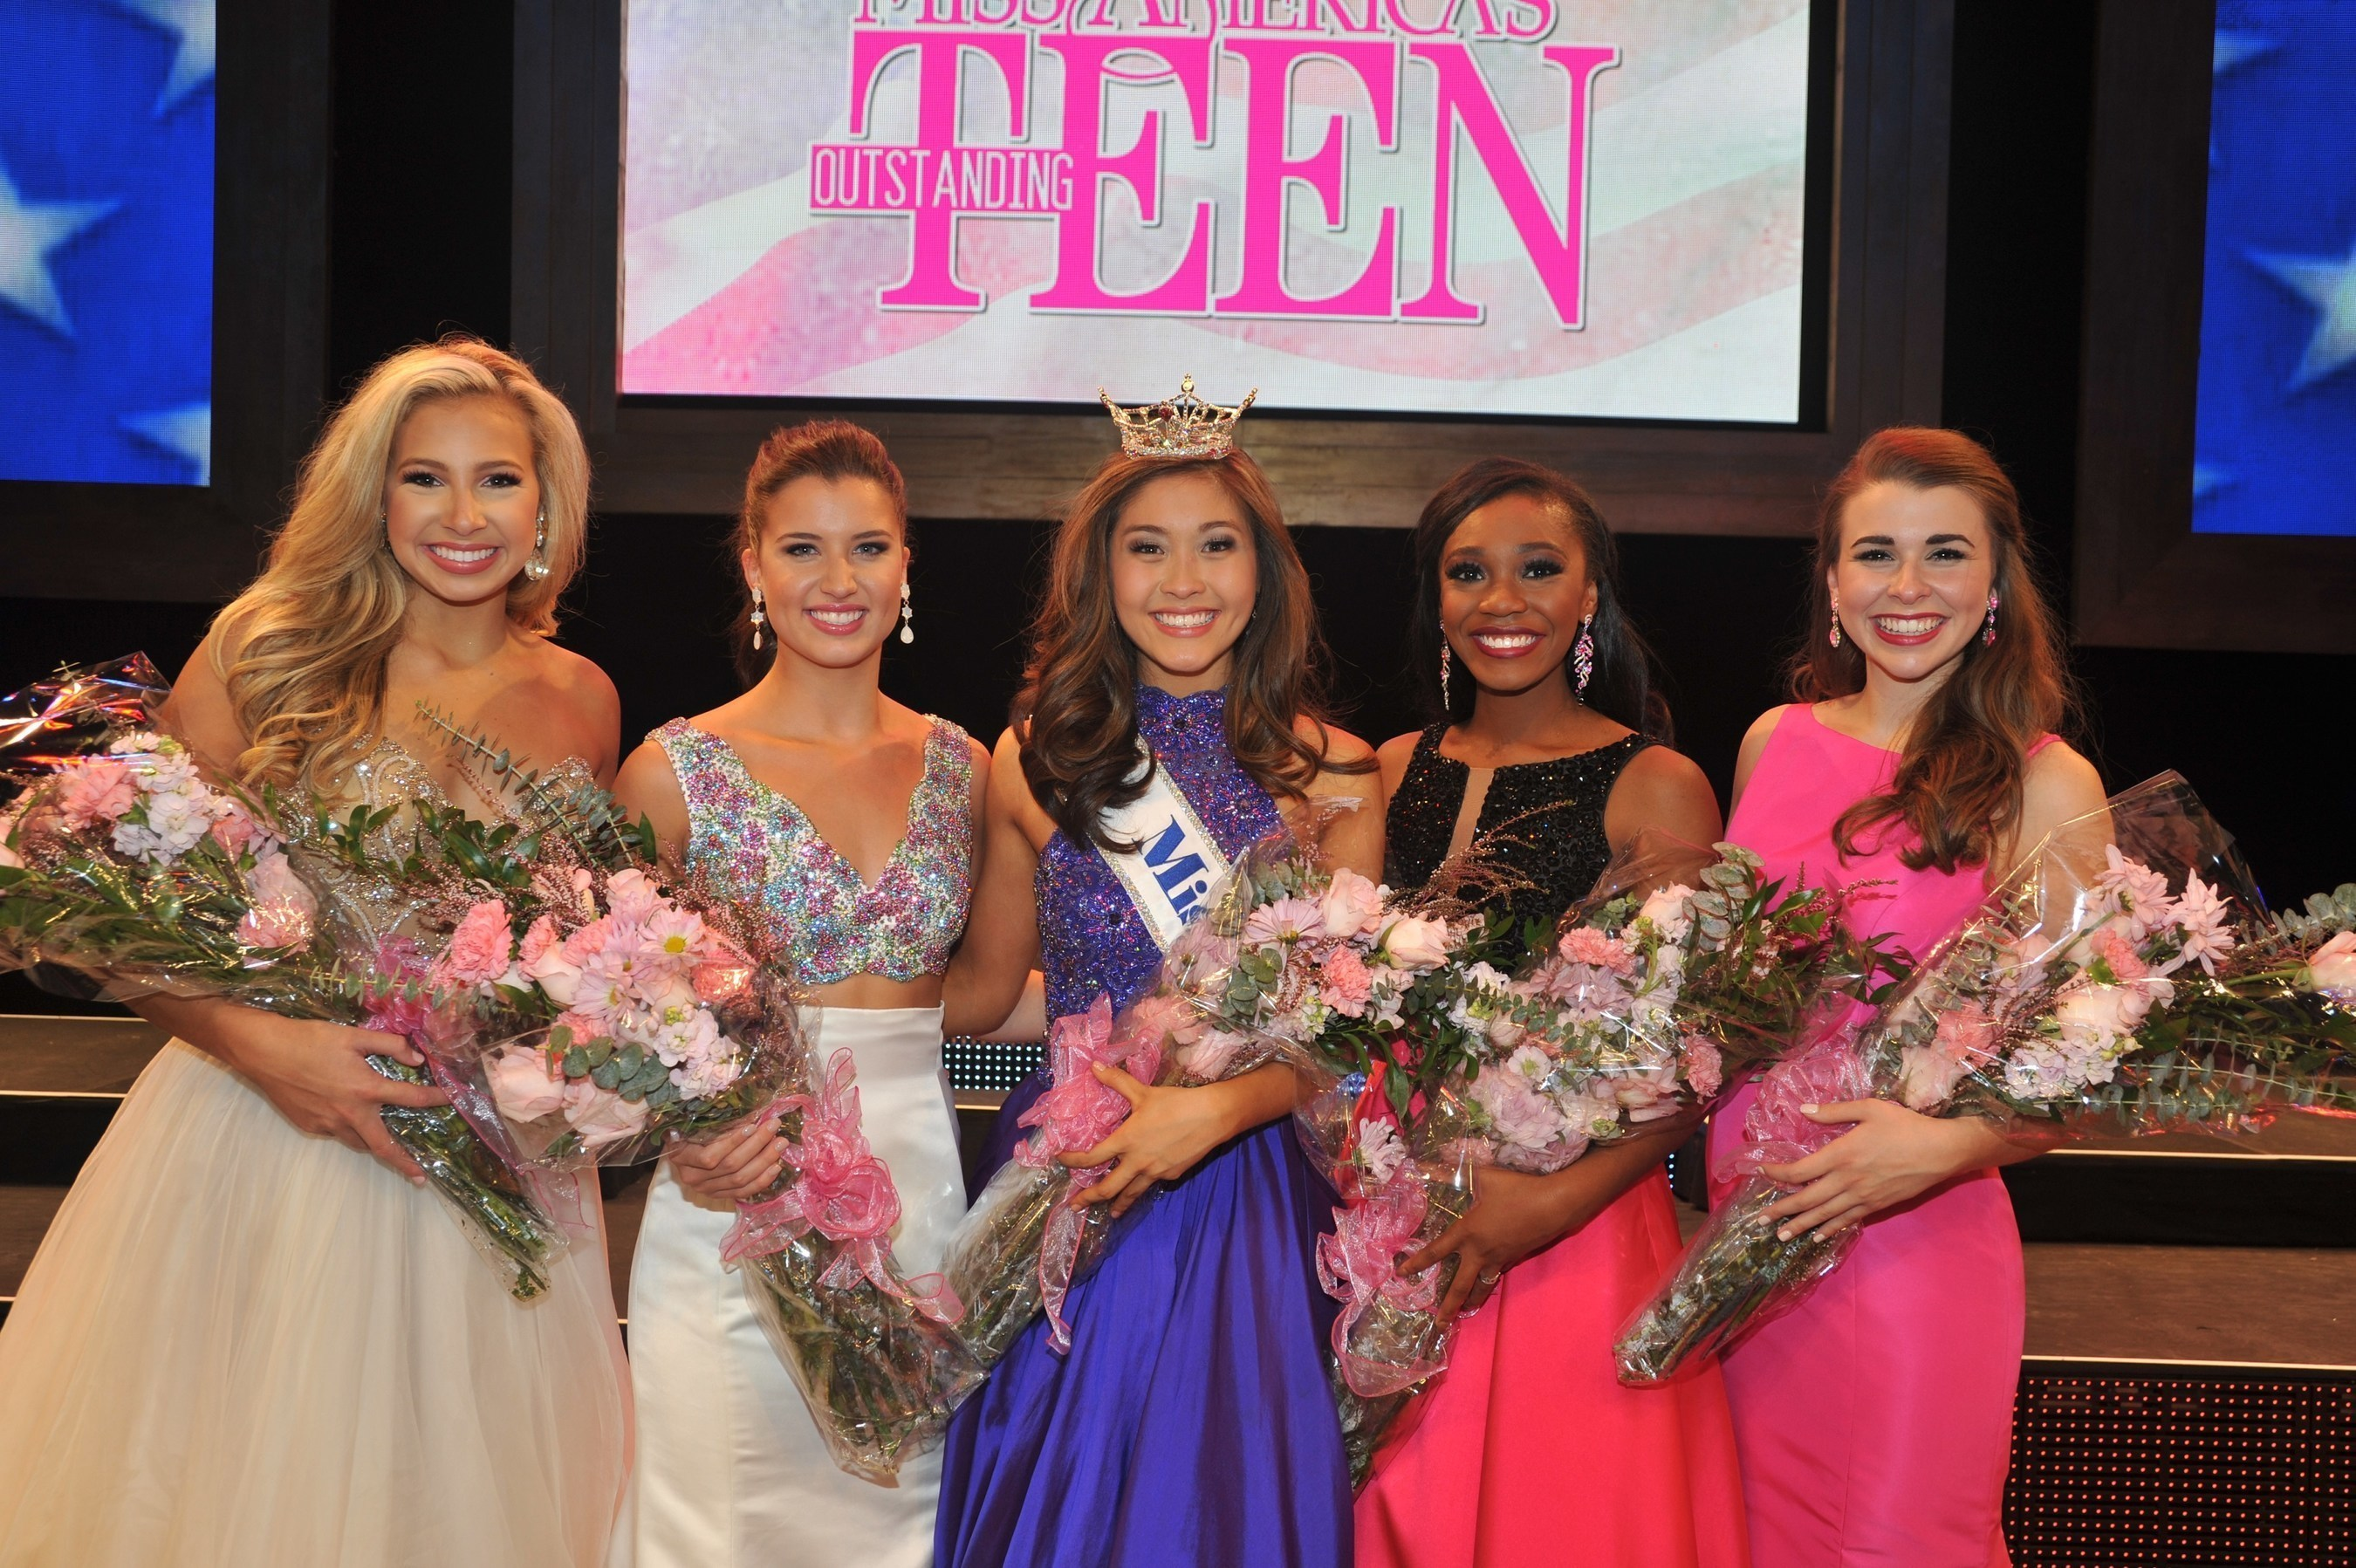 2017 Miss America's Outstanding Teen Competition Top 5 (l-r) Third Runner-Up, Miss Florida's Outstanding Teen Anjelica Jones; First Runner-Up, Miss North Carolina's Outstanding Teen Catherine White; Miss America's Outstanding Teen 2017 Nicole Jia; Second Runner-Up, Miss Georgia's Outstanding Teen Kelsey Hollis; and Fourth Runner-Up, Miss Louisiana's Outstanding Teen Sarah Katherine McCallum